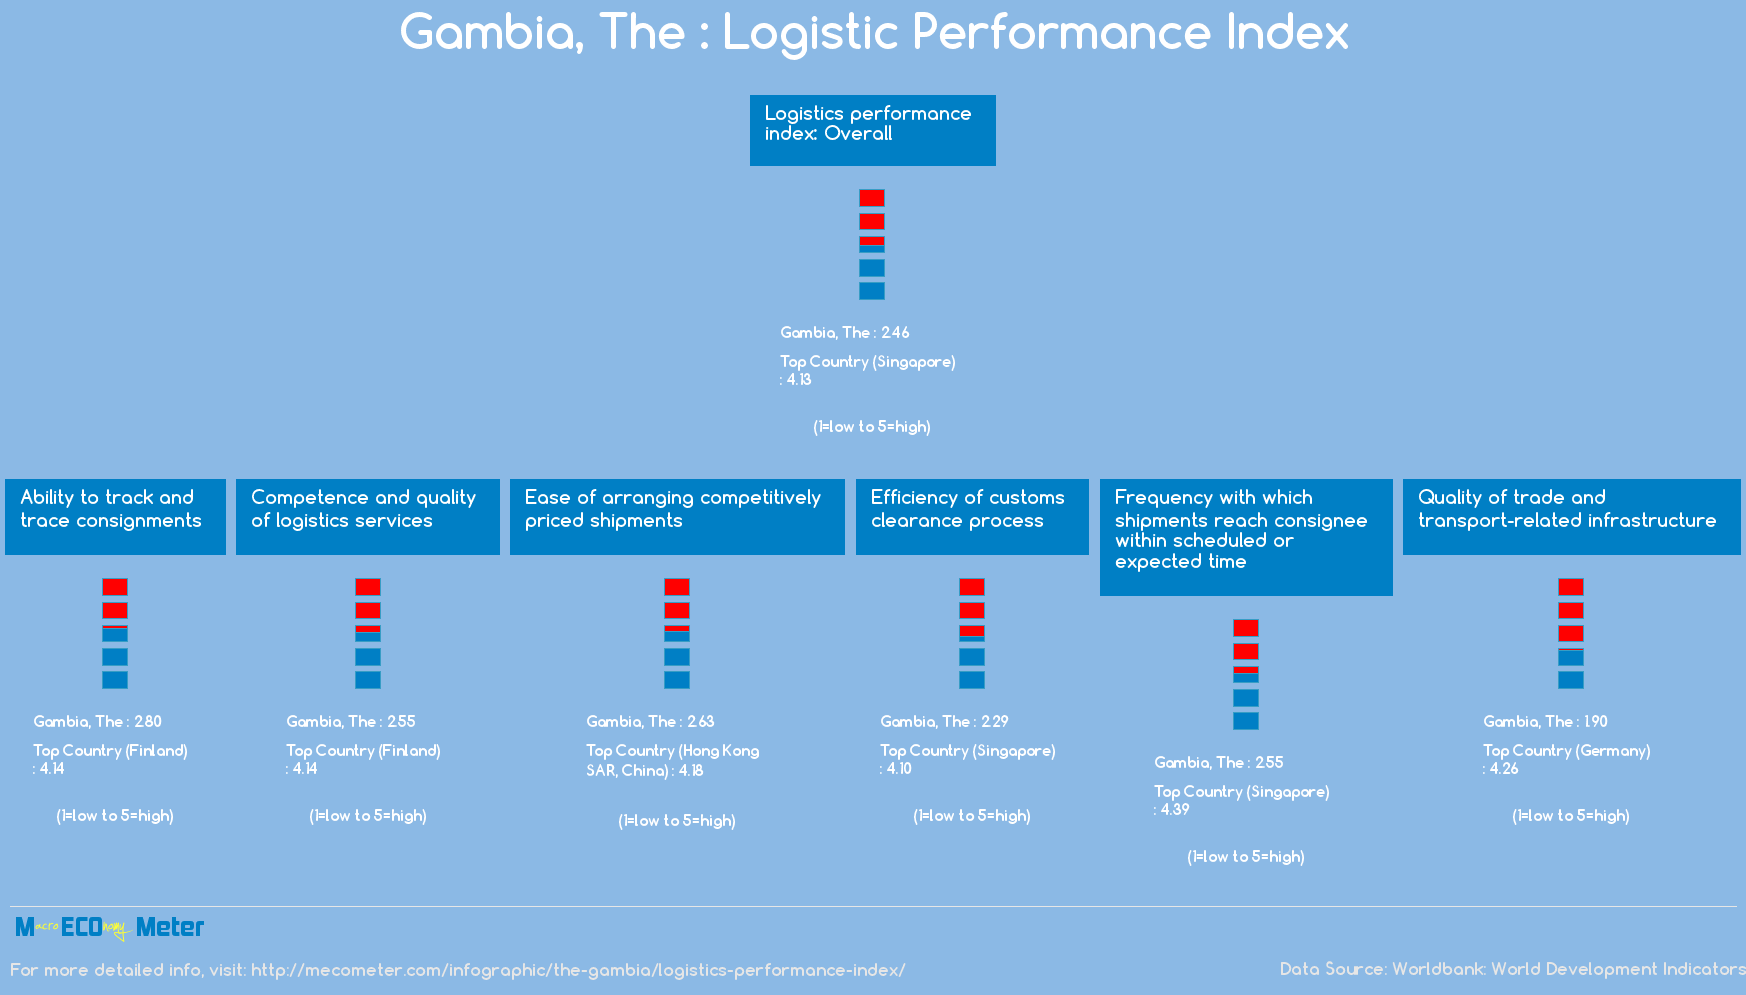 Gambia, The : Logistic Performance Index